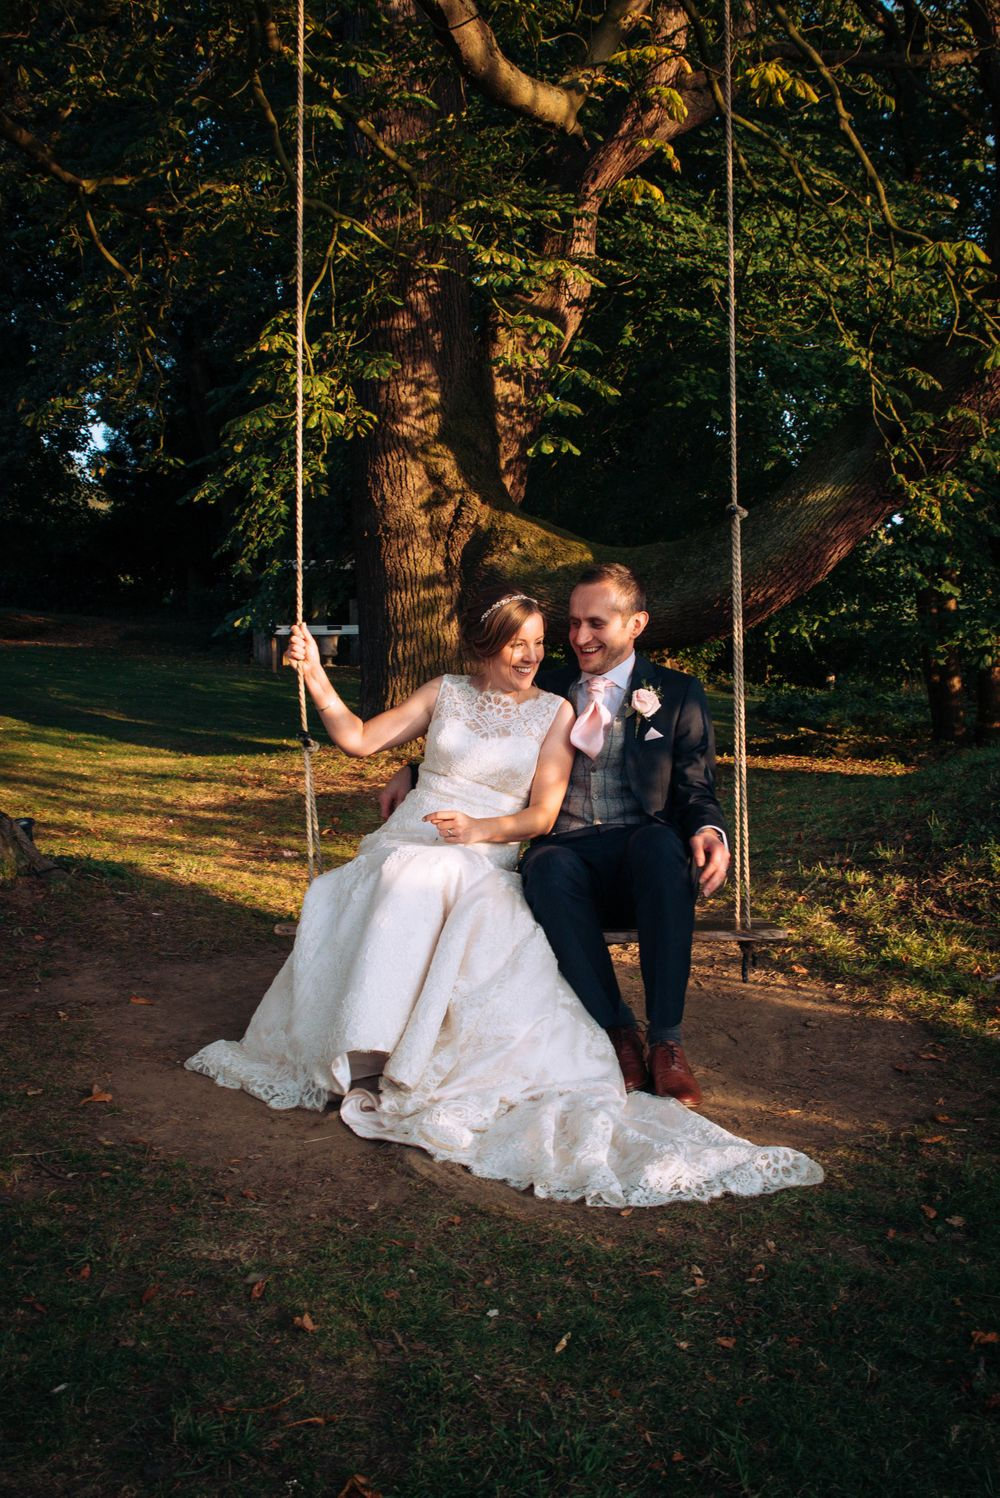 Zara Davis Wedding Photography Near Stroud, Gloucestershire, Cotswolds Glenfall House sunset bride and groom on swing